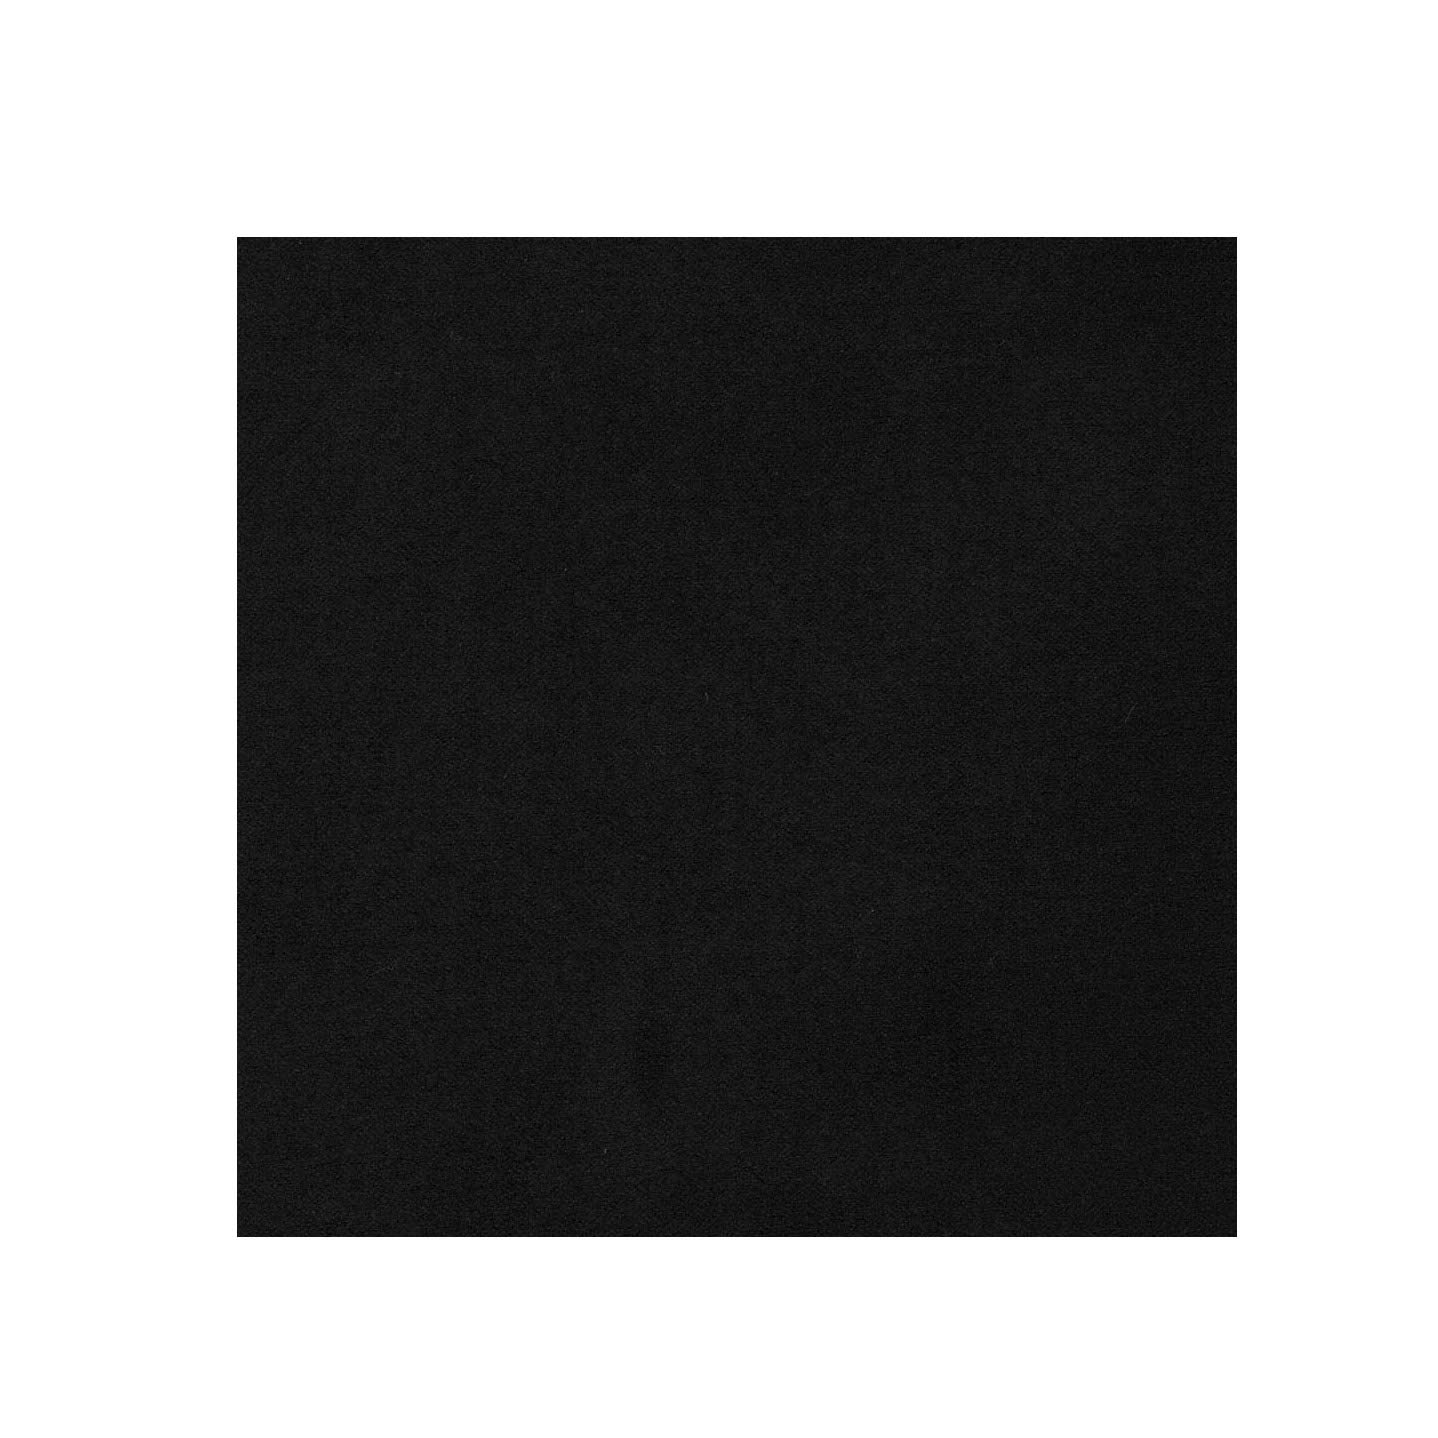 Mybecca Microsuede Black Suede Fabric Upholstery Drapery Furniture Cover &  General Use Fabric 58/60